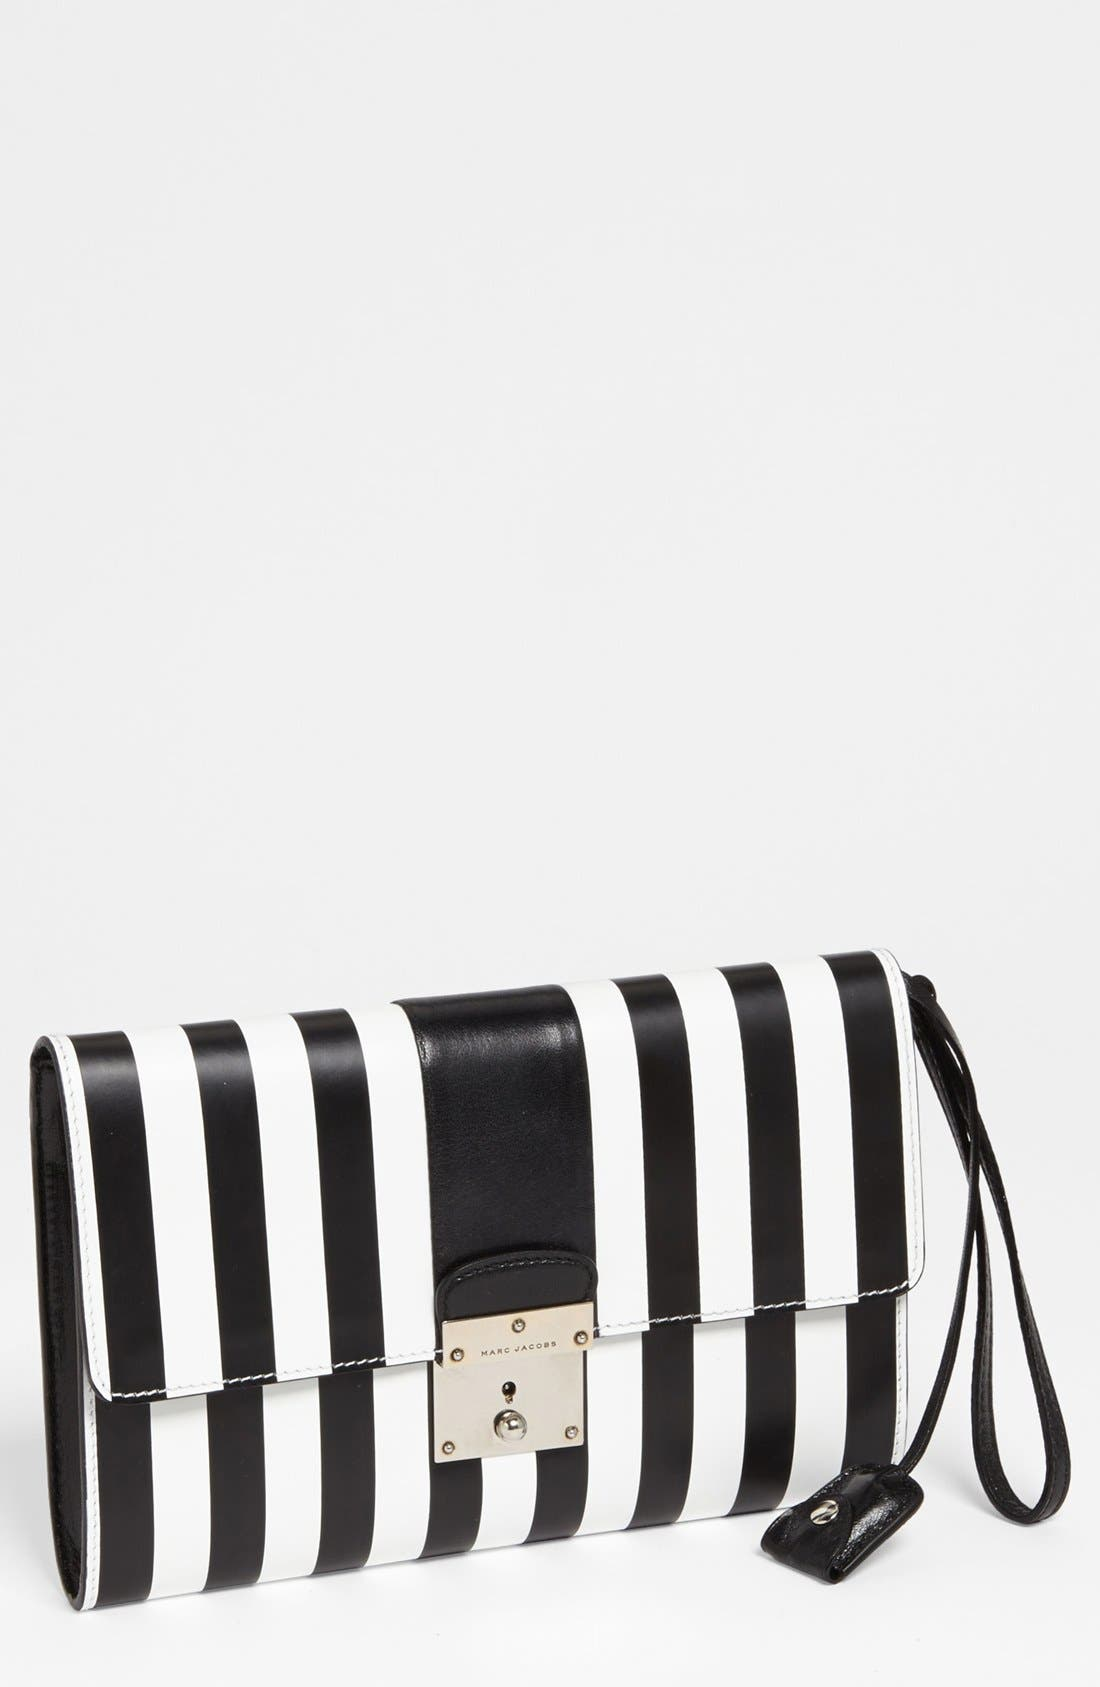 Main Image - MARC JACOBS 'Prisoners Isobel' Leather Clutch